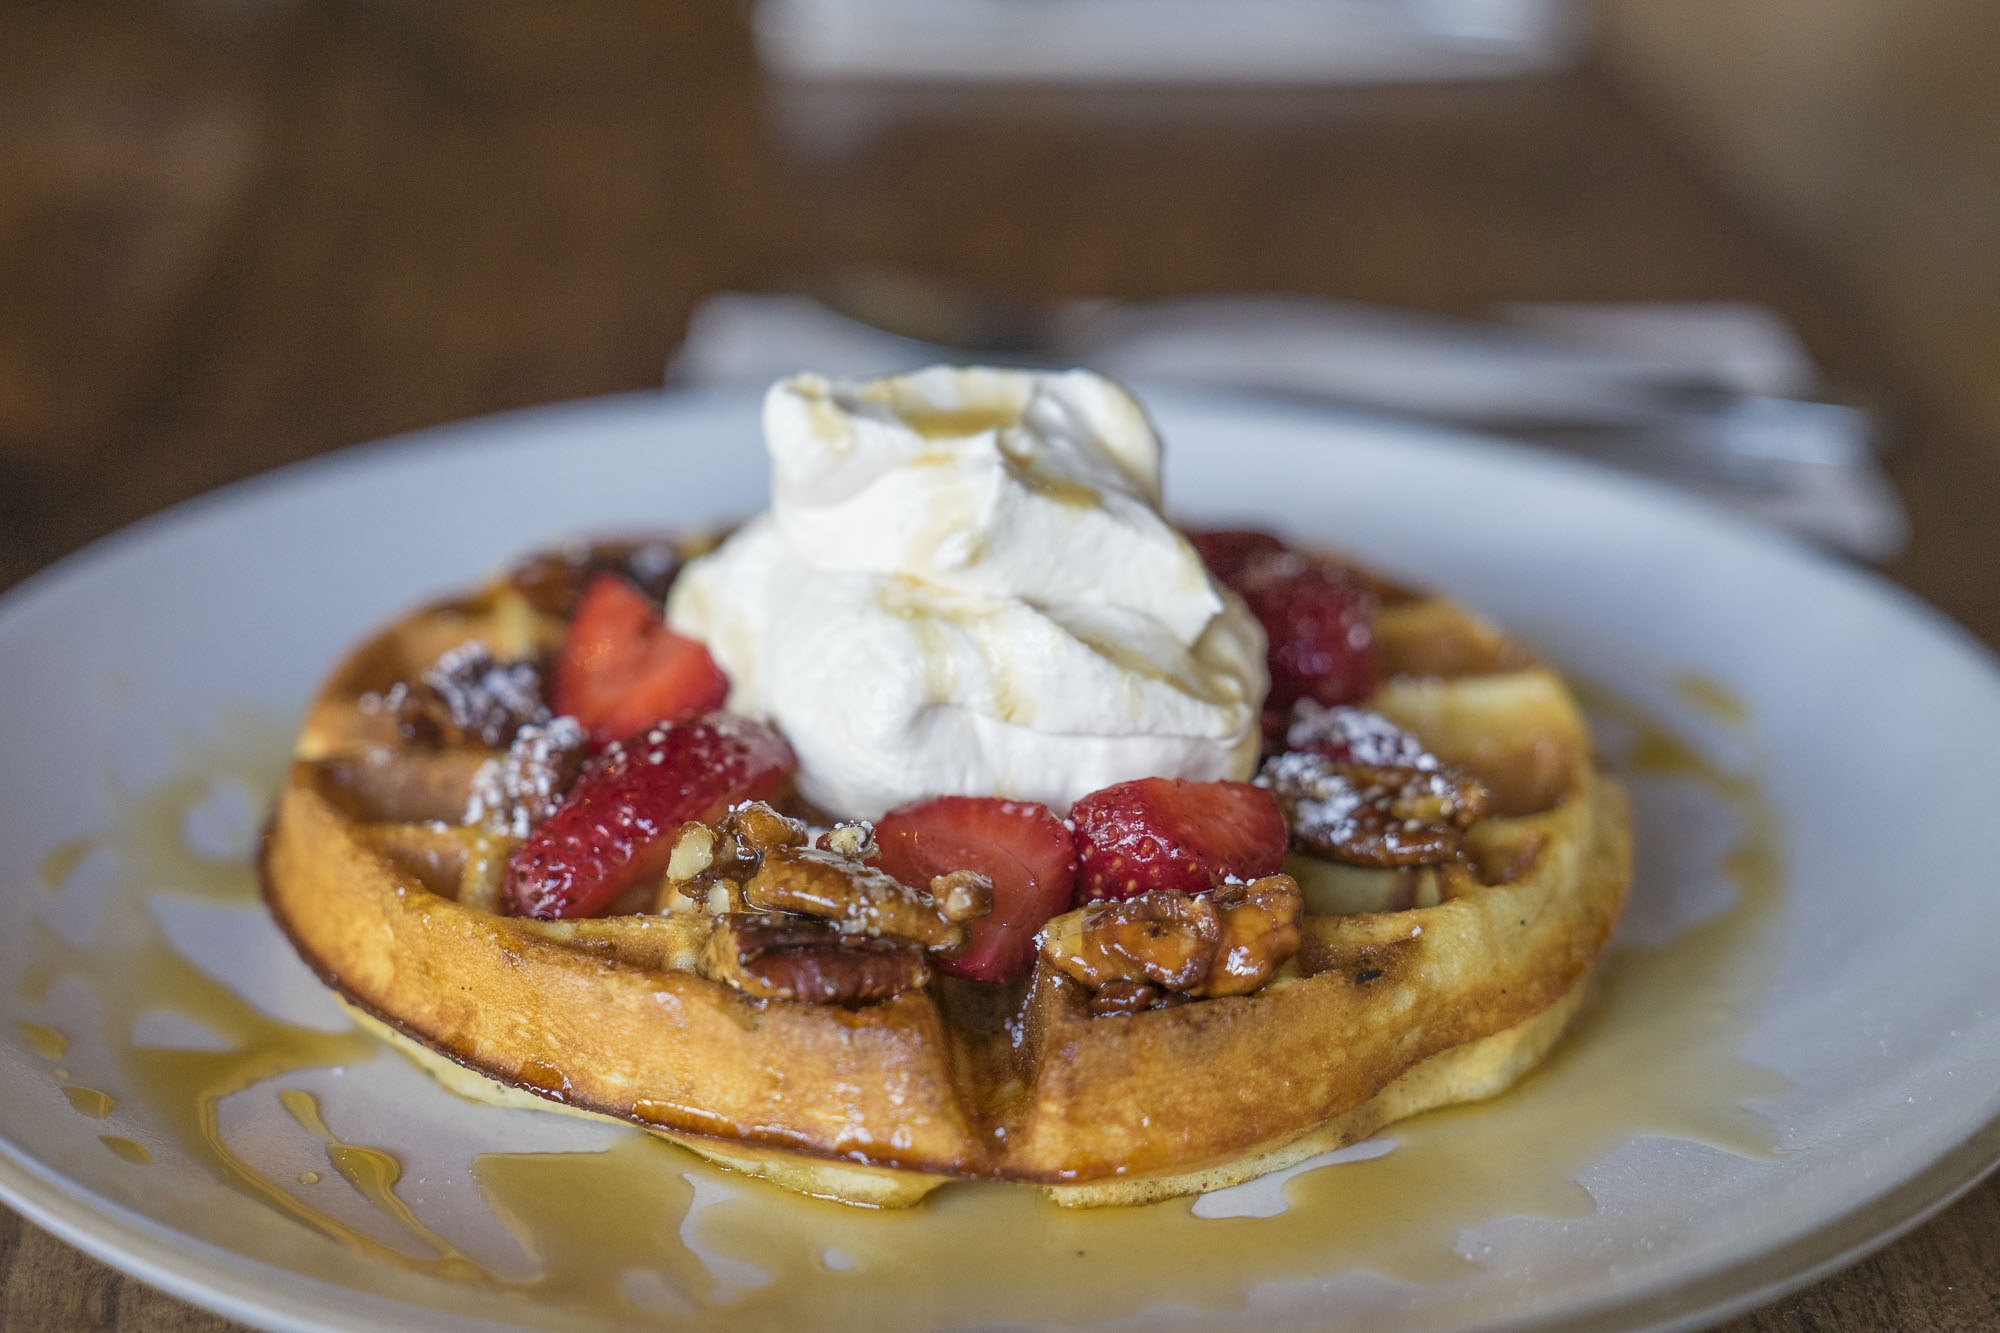 waffle with whipped cream, strawberries, pecans and syrup